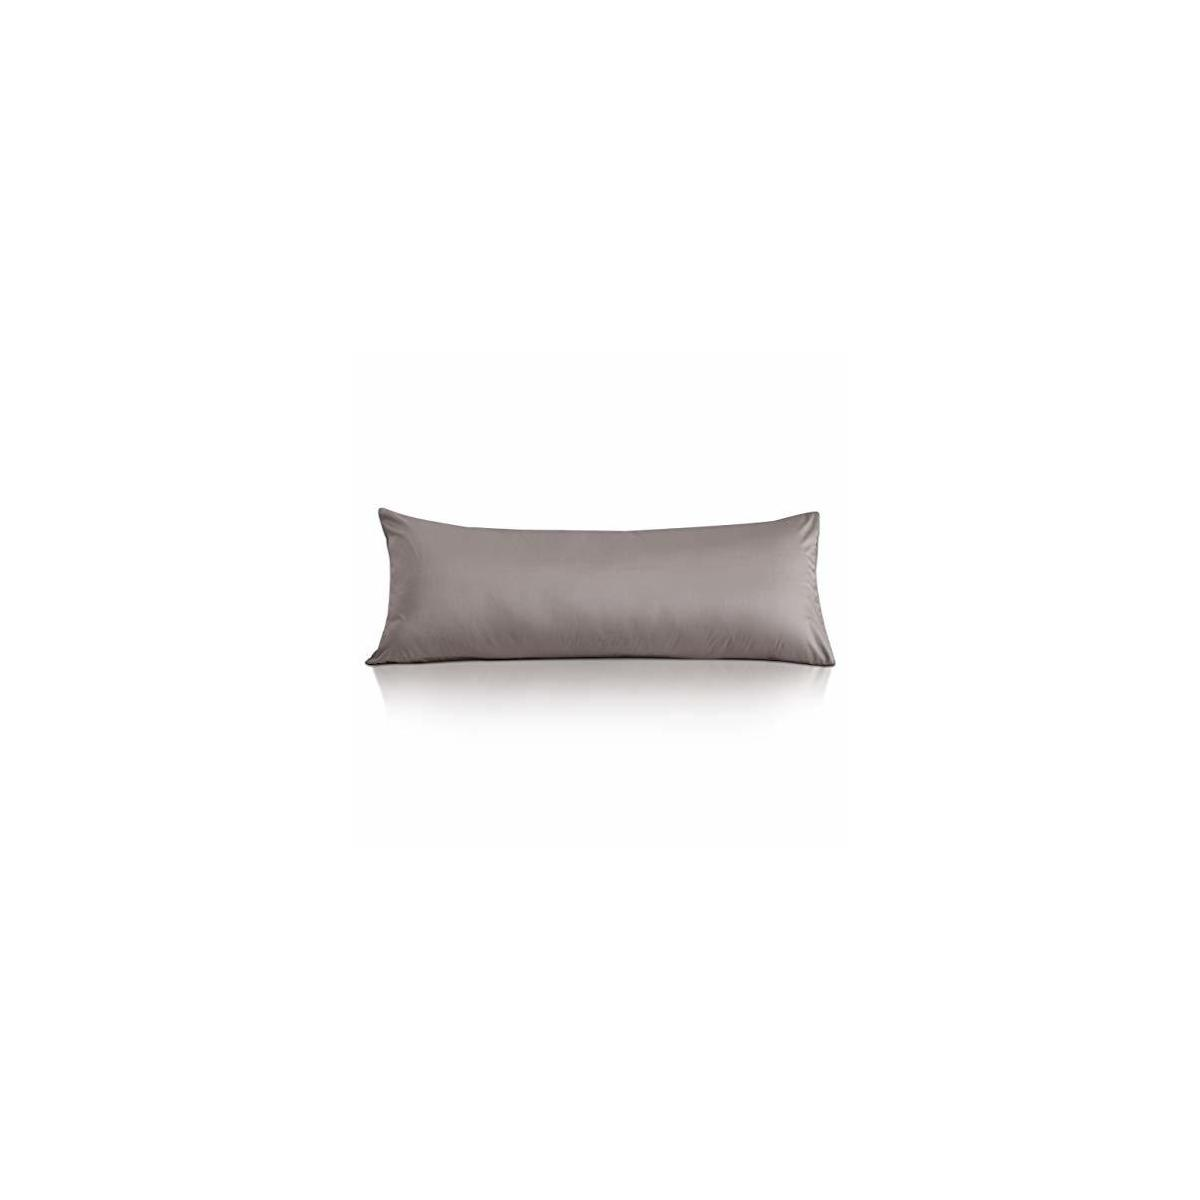 Leeden Cotton Body Pillow Cover, 800 Thread Count, Ultra Soft and Breathable Body Pillowcase for Adults, Envelope Closure, 21